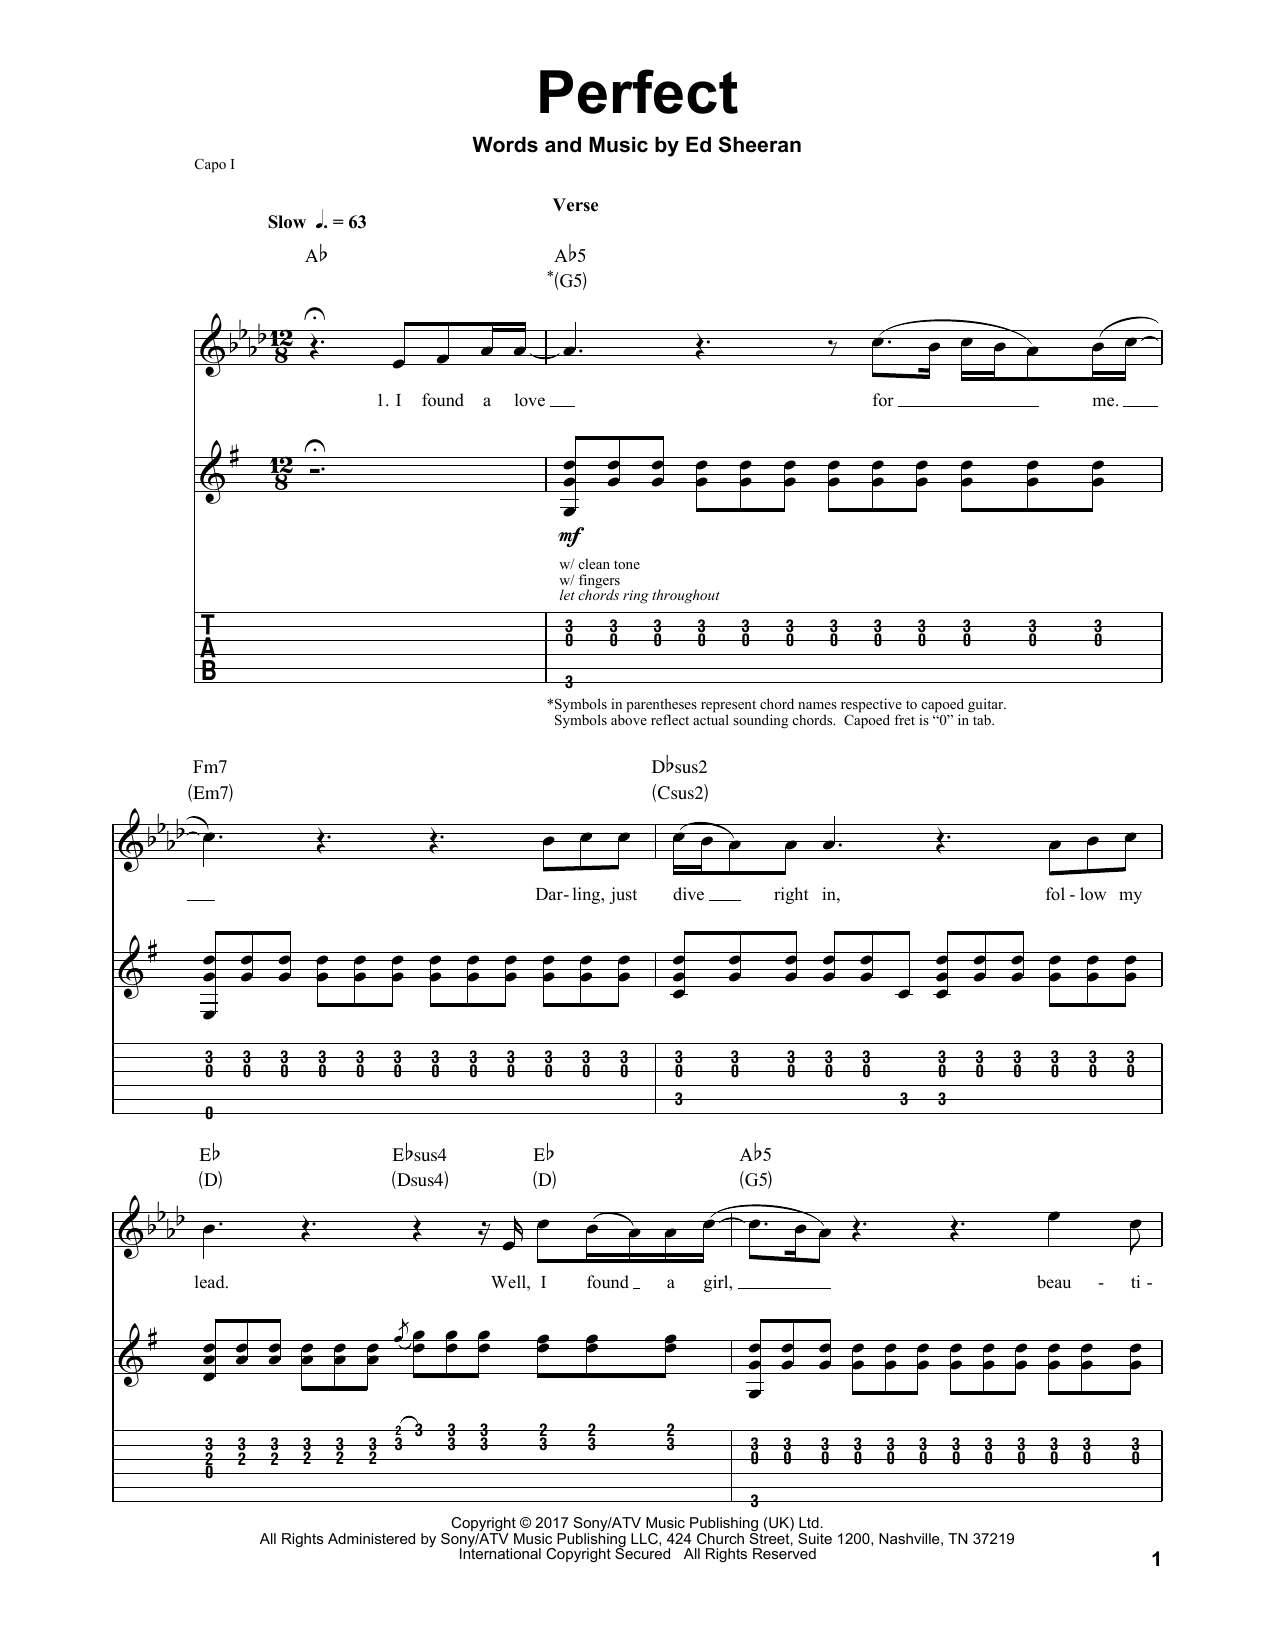 Acordes De Guitarra Para Música Cristiana Perfect Partituras Ed Sheeran Guitarra Tablatura Guitarra